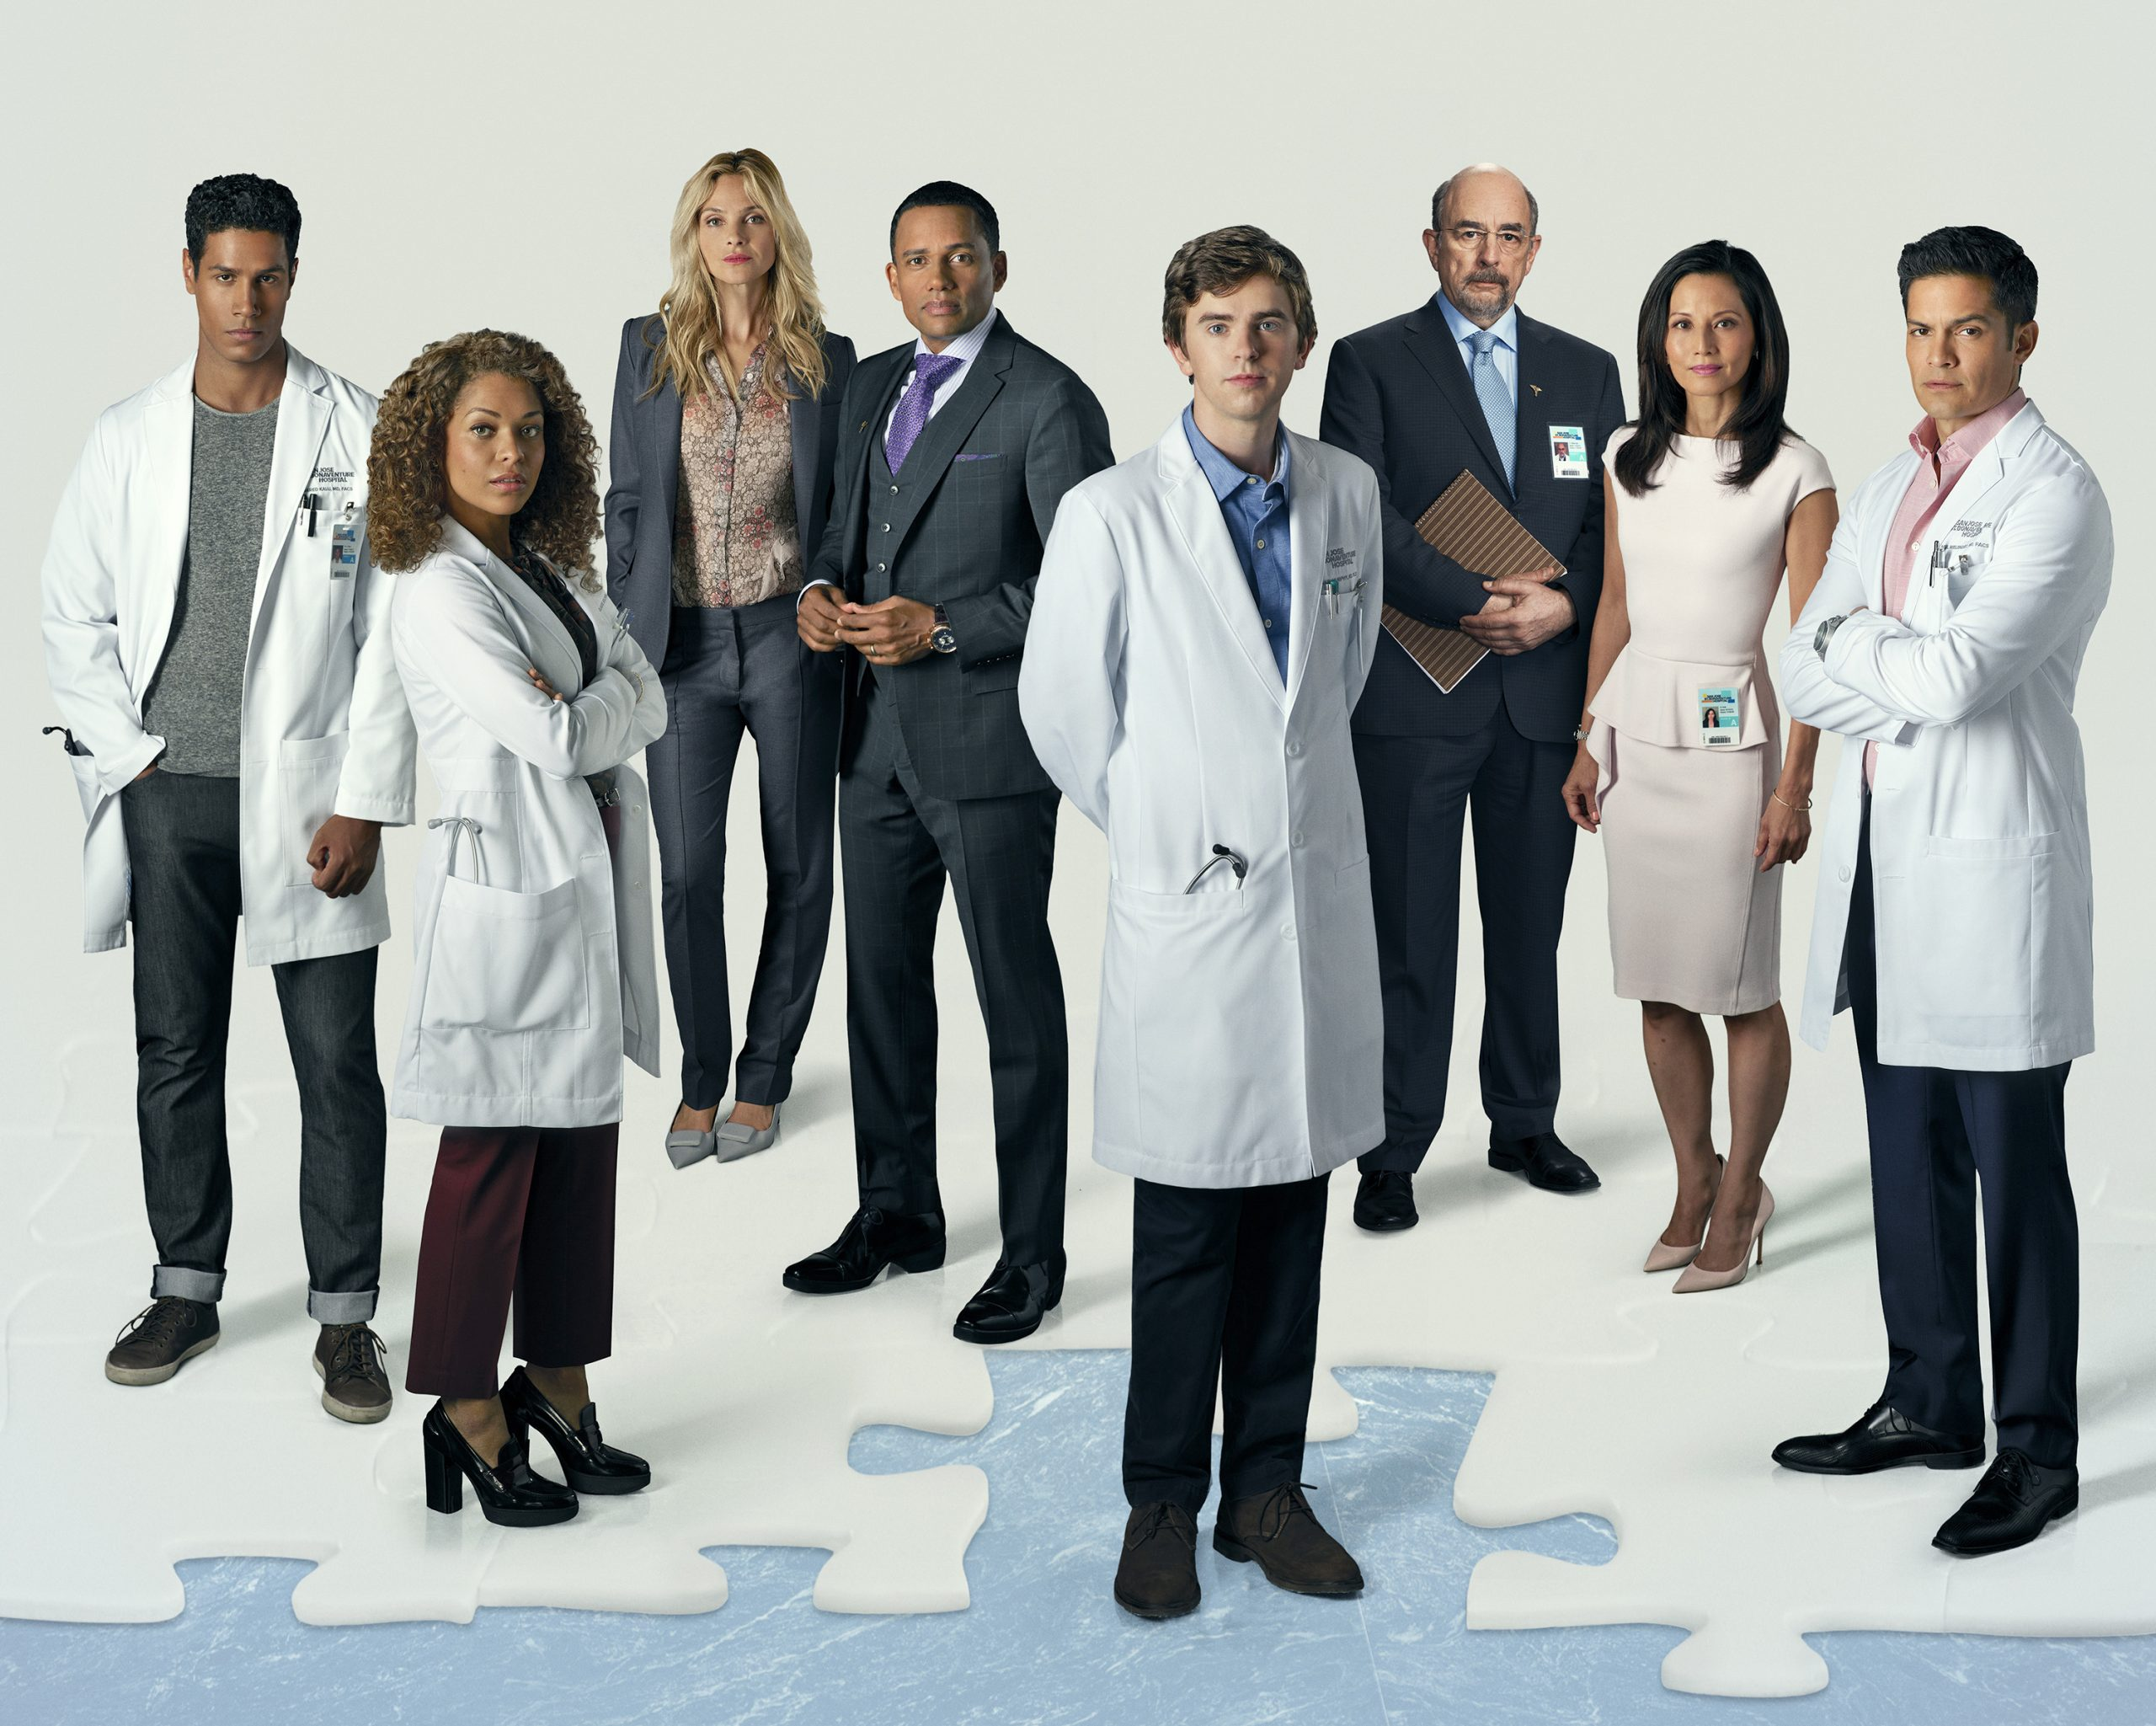 ABC Announced That The Good Doctor Season 5 Is Finally Happening